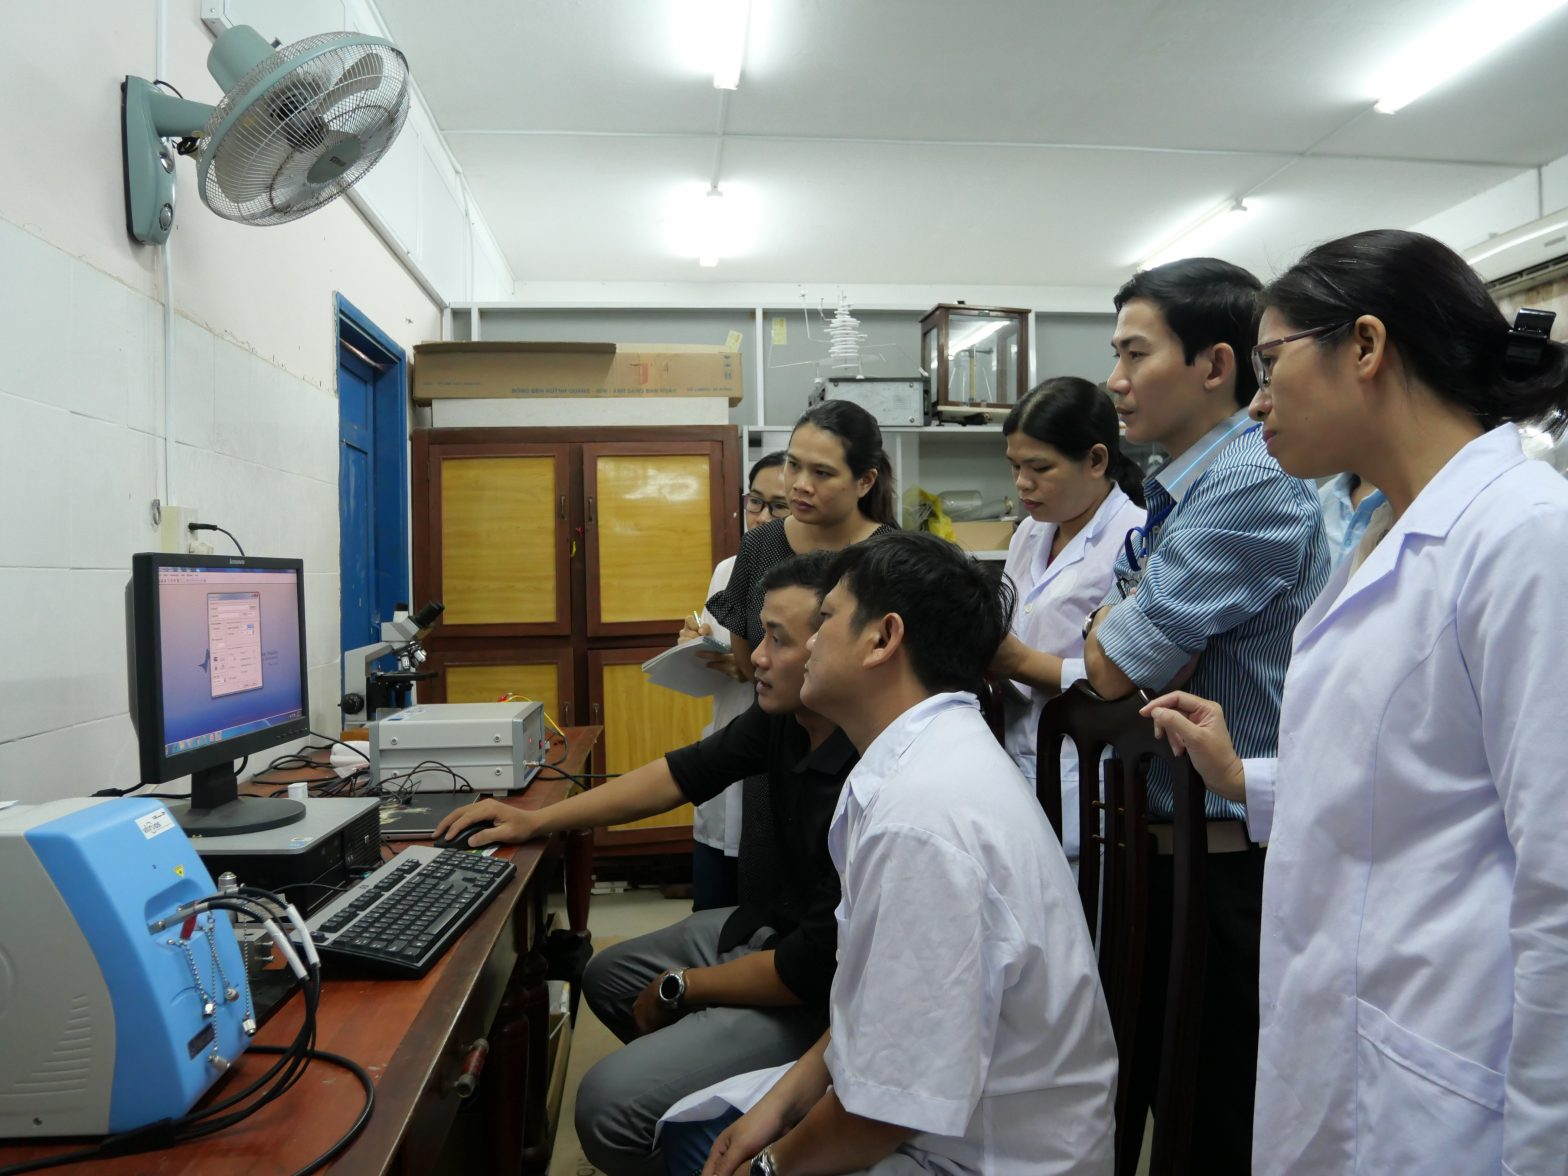 EQUIPMENT INSTALLATION AND TRAINING at Quy Nhon University